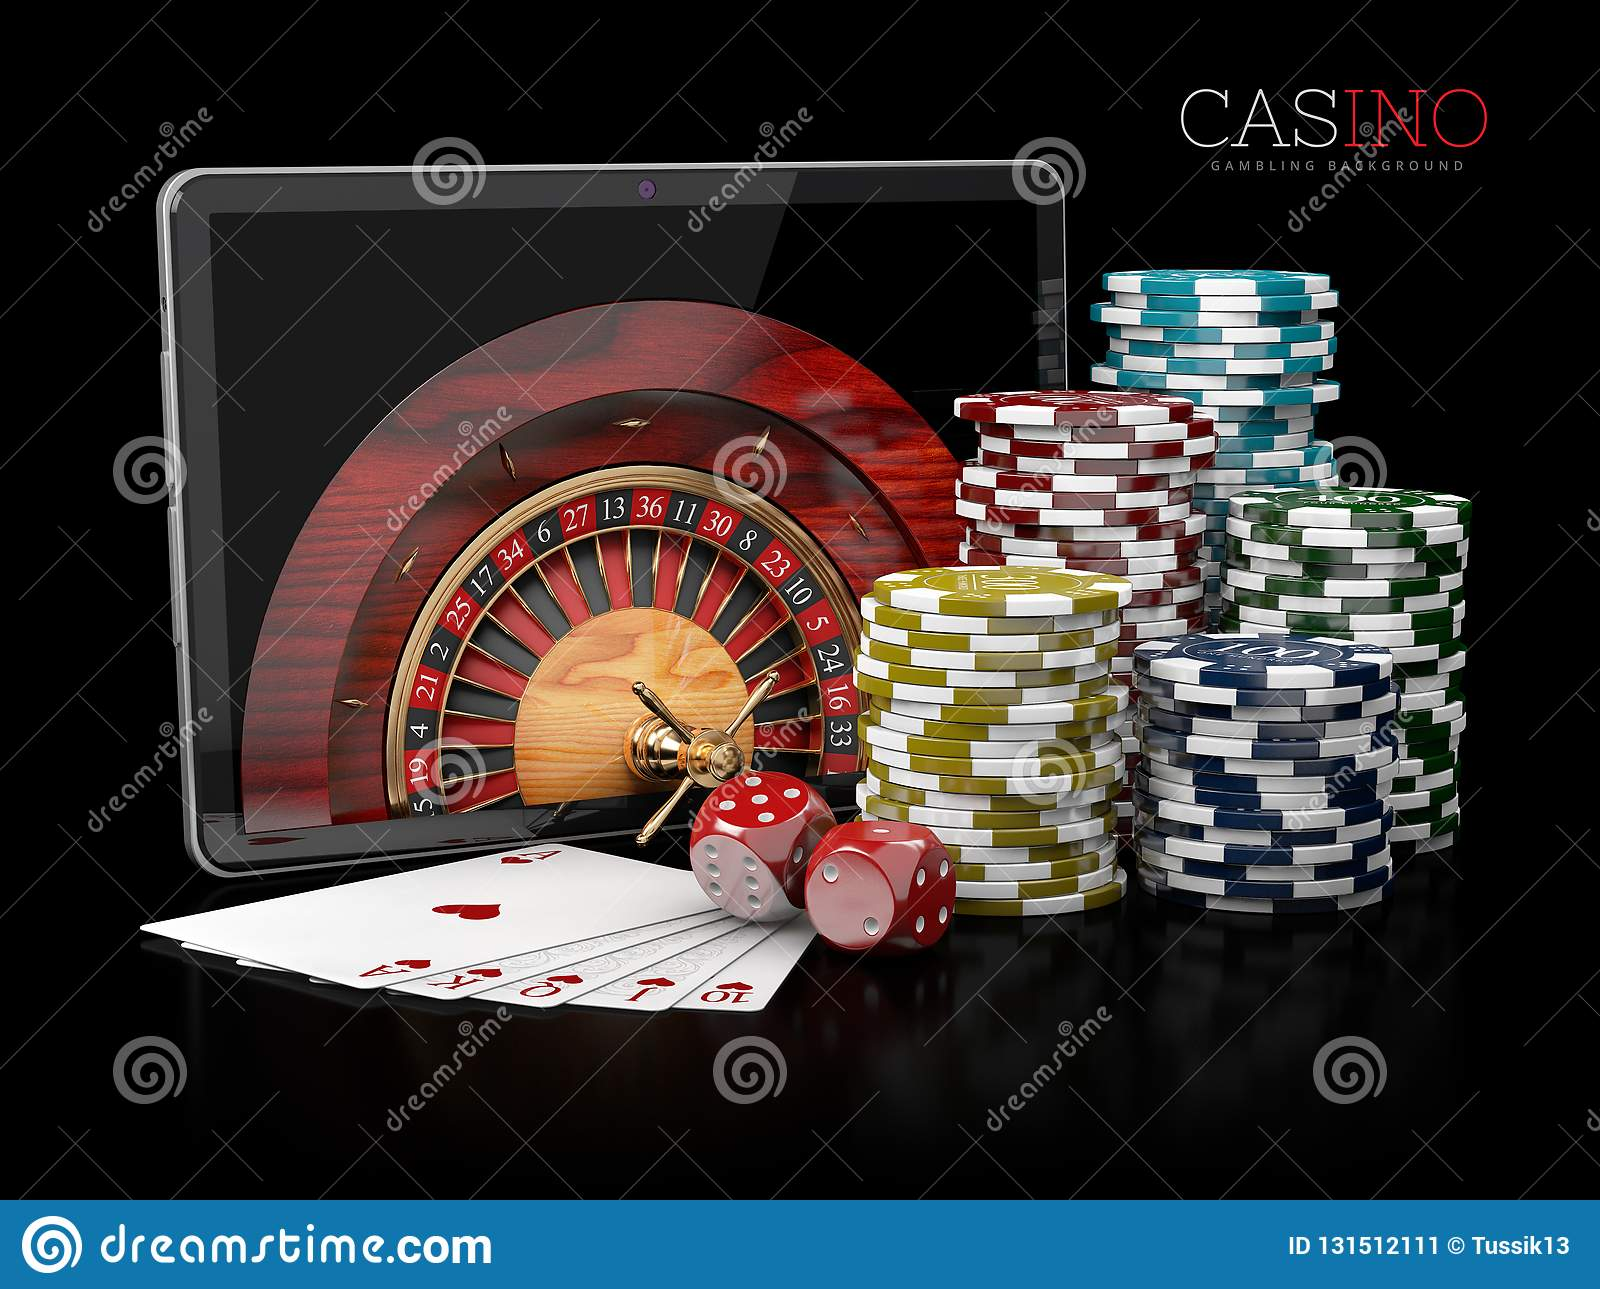 3d Illustration of Casino background with tablet, dice, cards, roulette and chips.